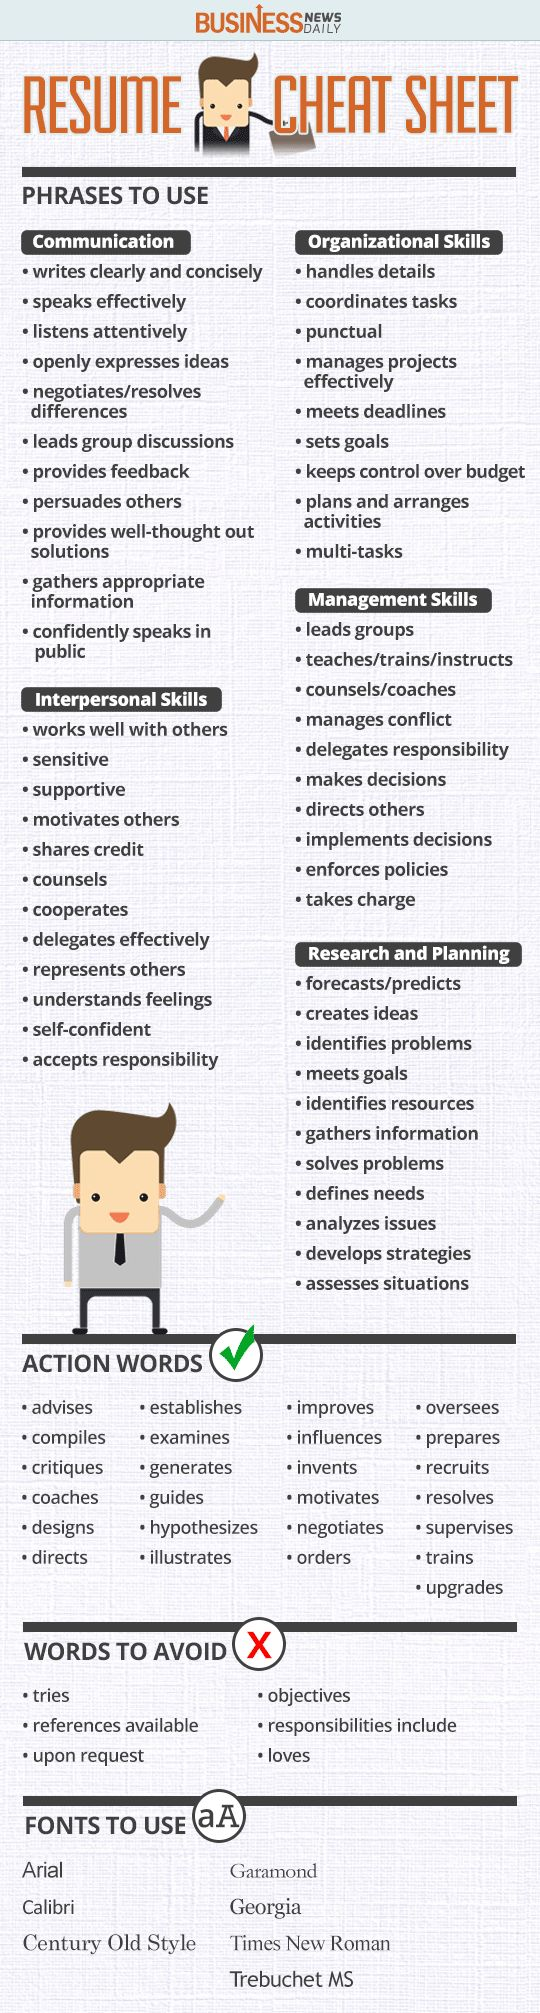 Opposenewapstandardsus  Winsome  Ideas About Resume On Pinterest  Cv Format Resume Cv And  With Lovely Resume Cheat Sheet Infographic Andrews Almost Done With A Complete Unit On Employment Which With Lovely Action Words For A Resume Also Build Your Own Resume Free In Addition Resume Pics And Federal Resume Templates As Well As Front Office Resume Additionally Senior Business Analyst Resume Sample From Pinterestcom With Opposenewapstandardsus  Lovely  Ideas About Resume On Pinterest  Cv Format Resume Cv And  With Lovely Resume Cheat Sheet Infographic Andrews Almost Done With A Complete Unit On Employment Which And Winsome Action Words For A Resume Also Build Your Own Resume Free In Addition Resume Pics From Pinterestcom